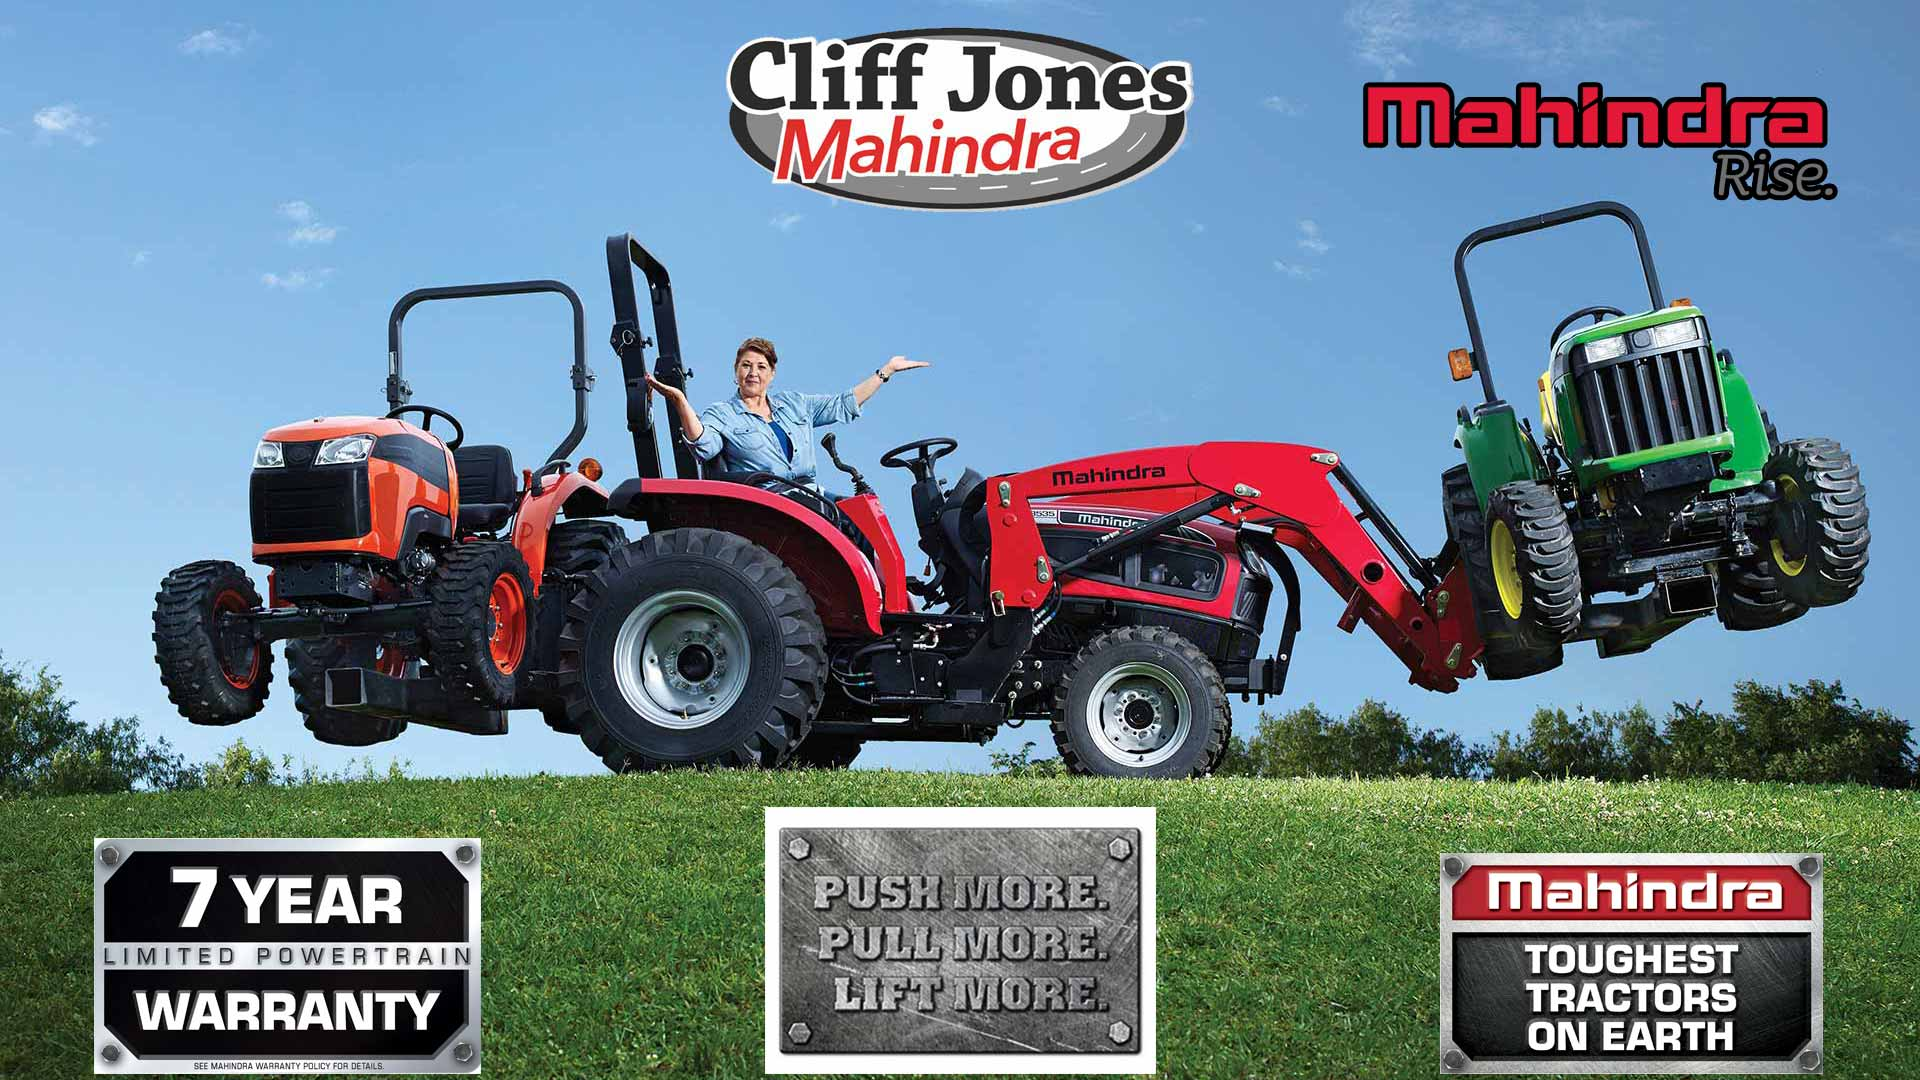 Cliff Jones Tractor In Sealy, Texas | Why The Mahindra